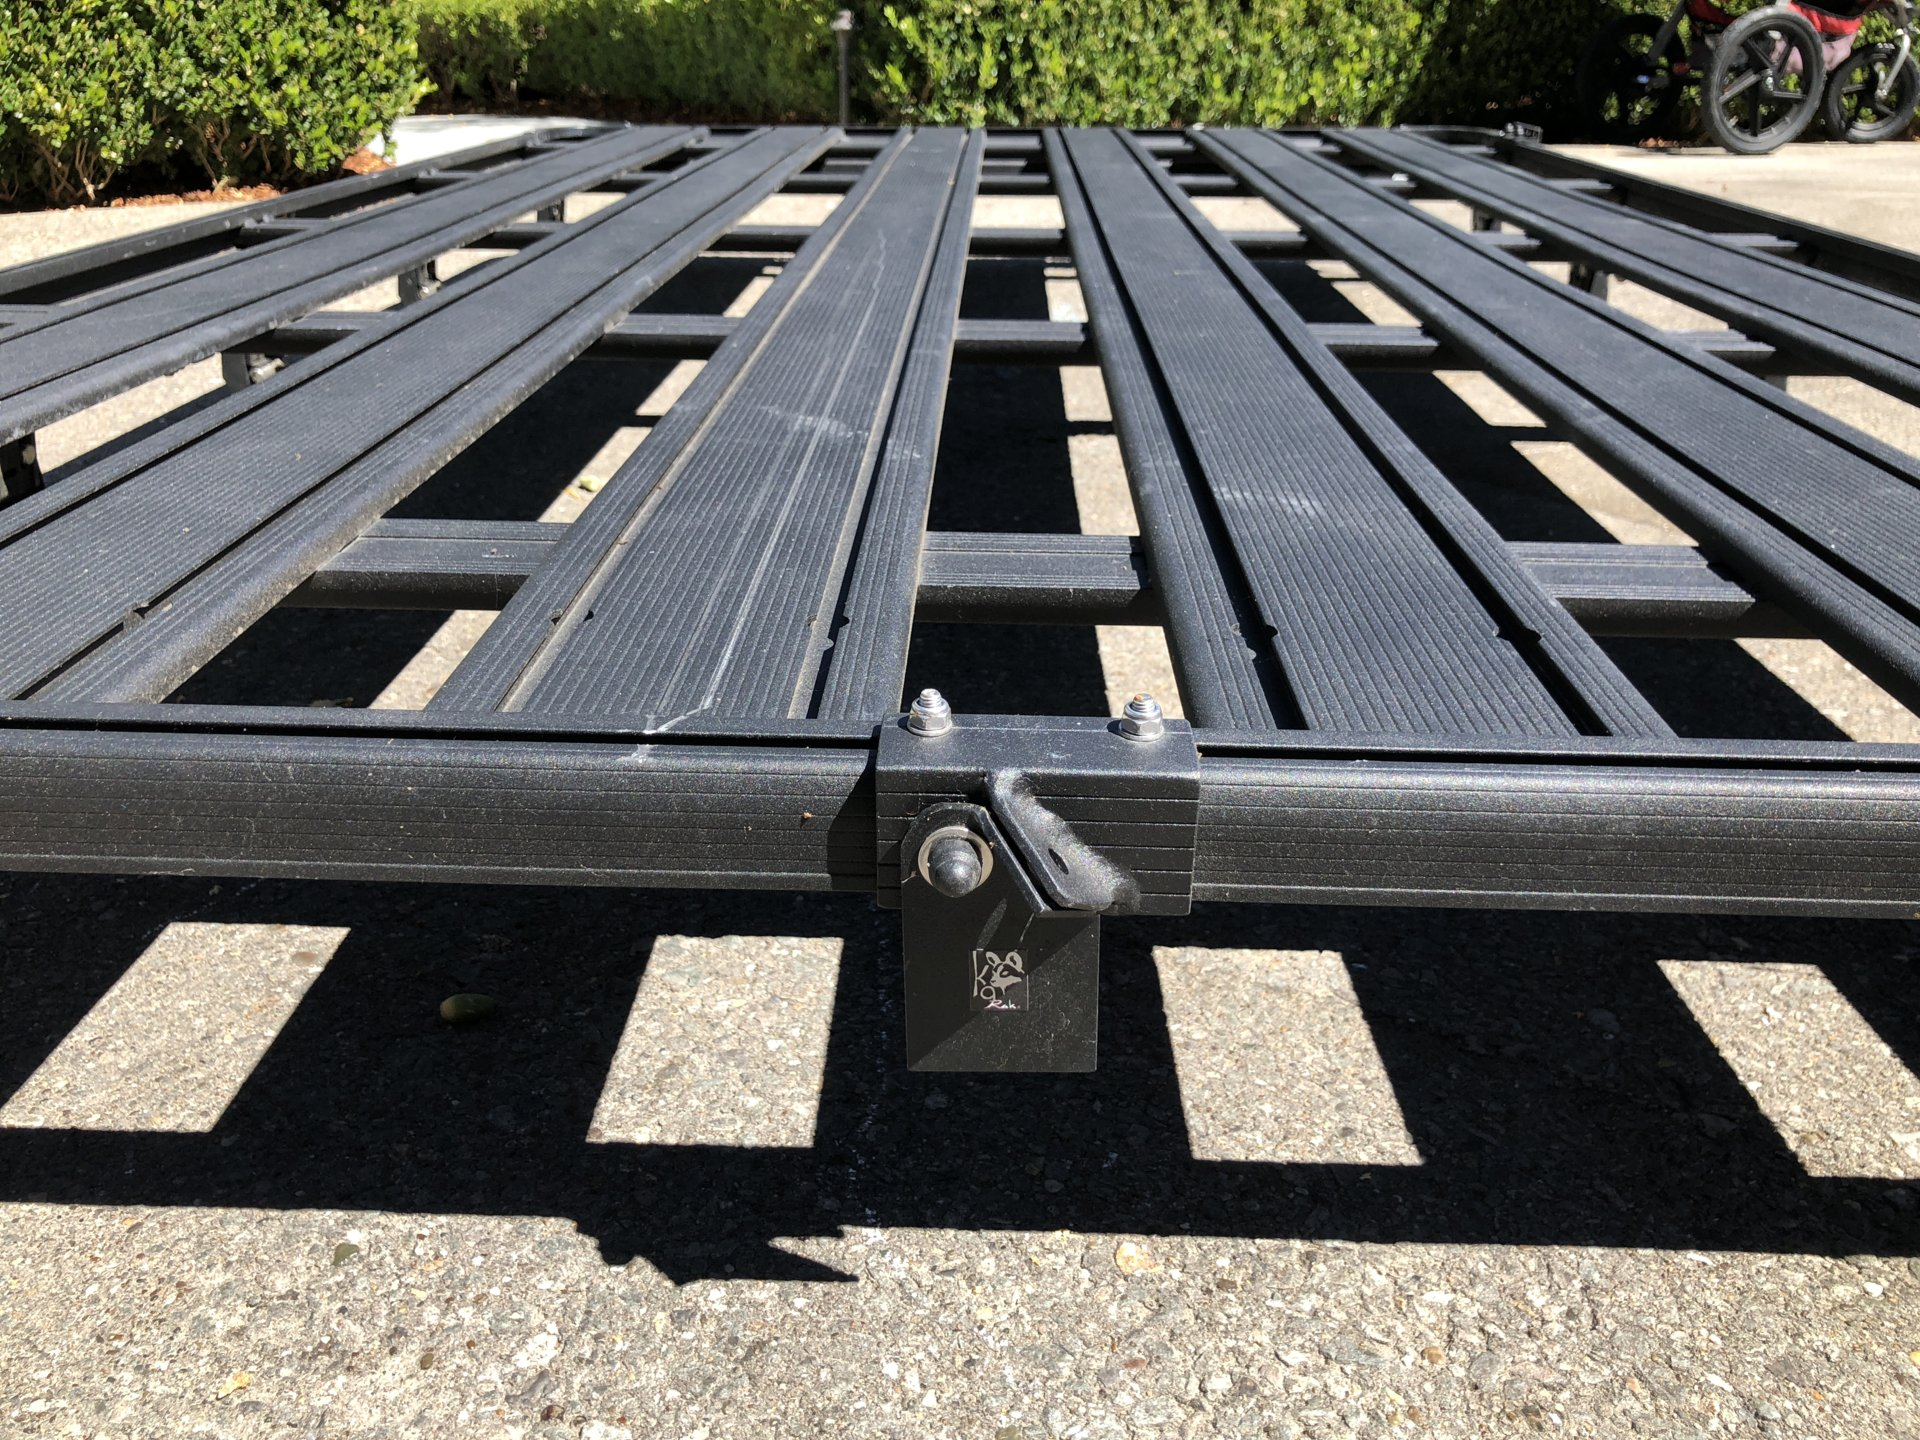 For Sale Eezi Awn K9 Roof Rack 2 2m Length 60 62 80